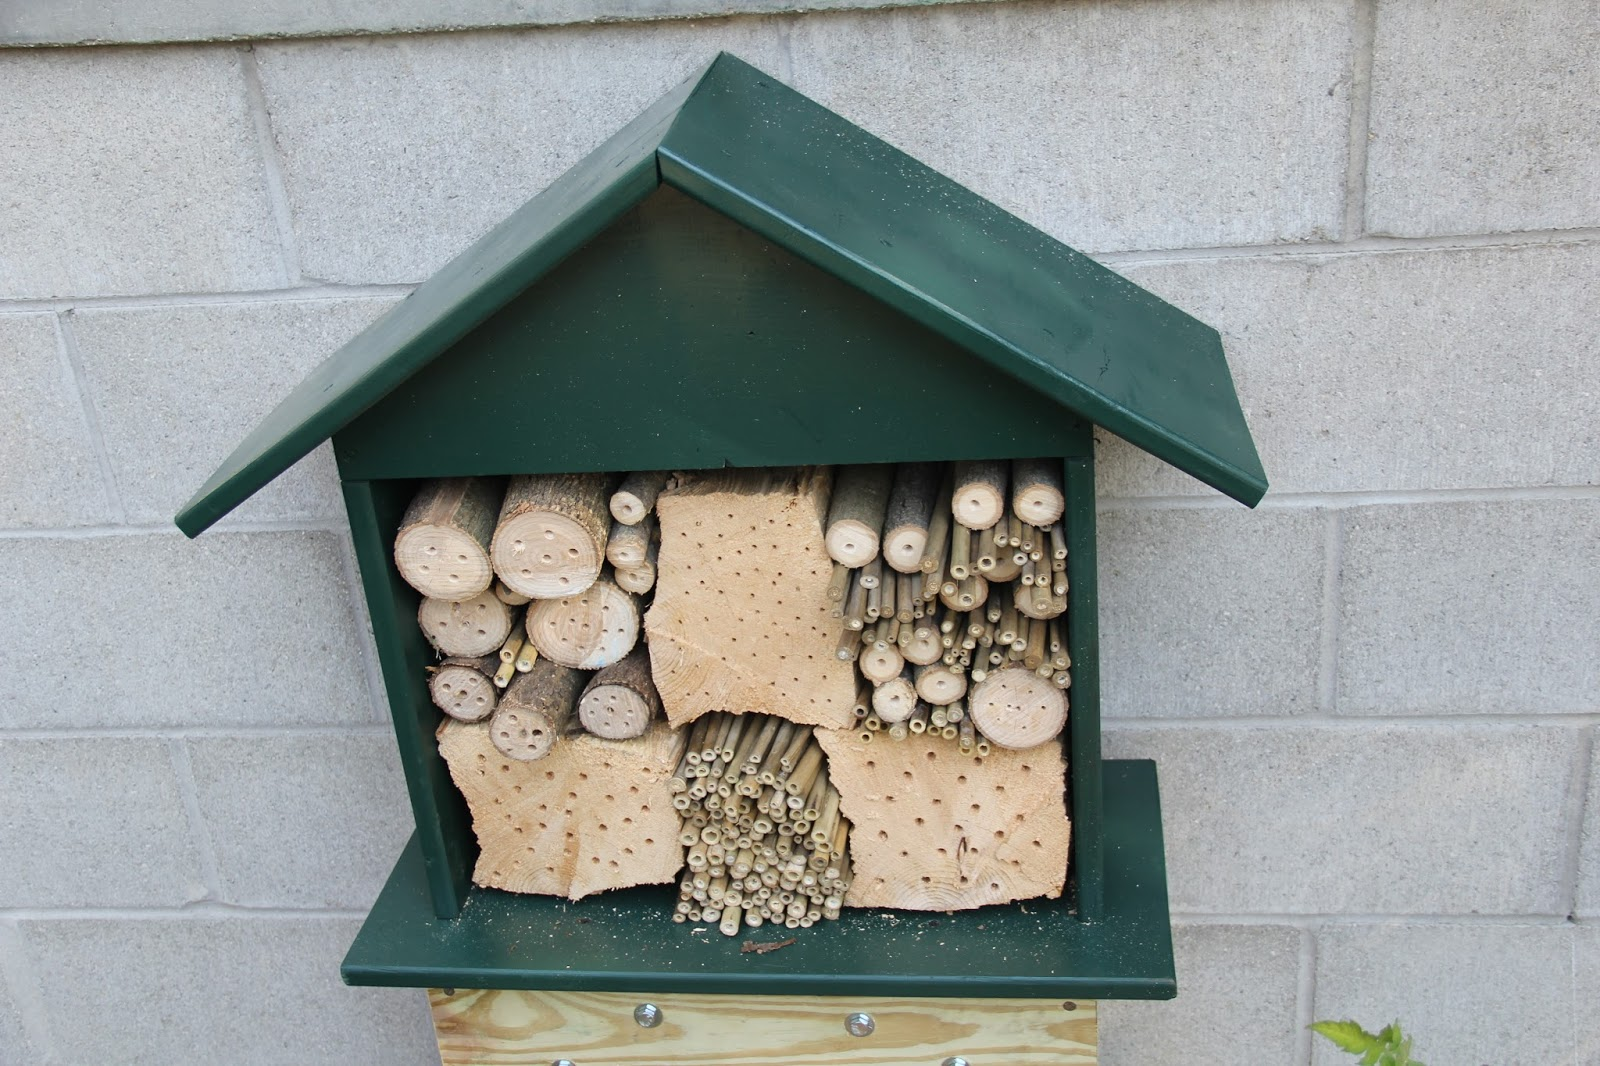 Bee Nesting Box Made From Almost All Scrap Leftover And Recycled Material